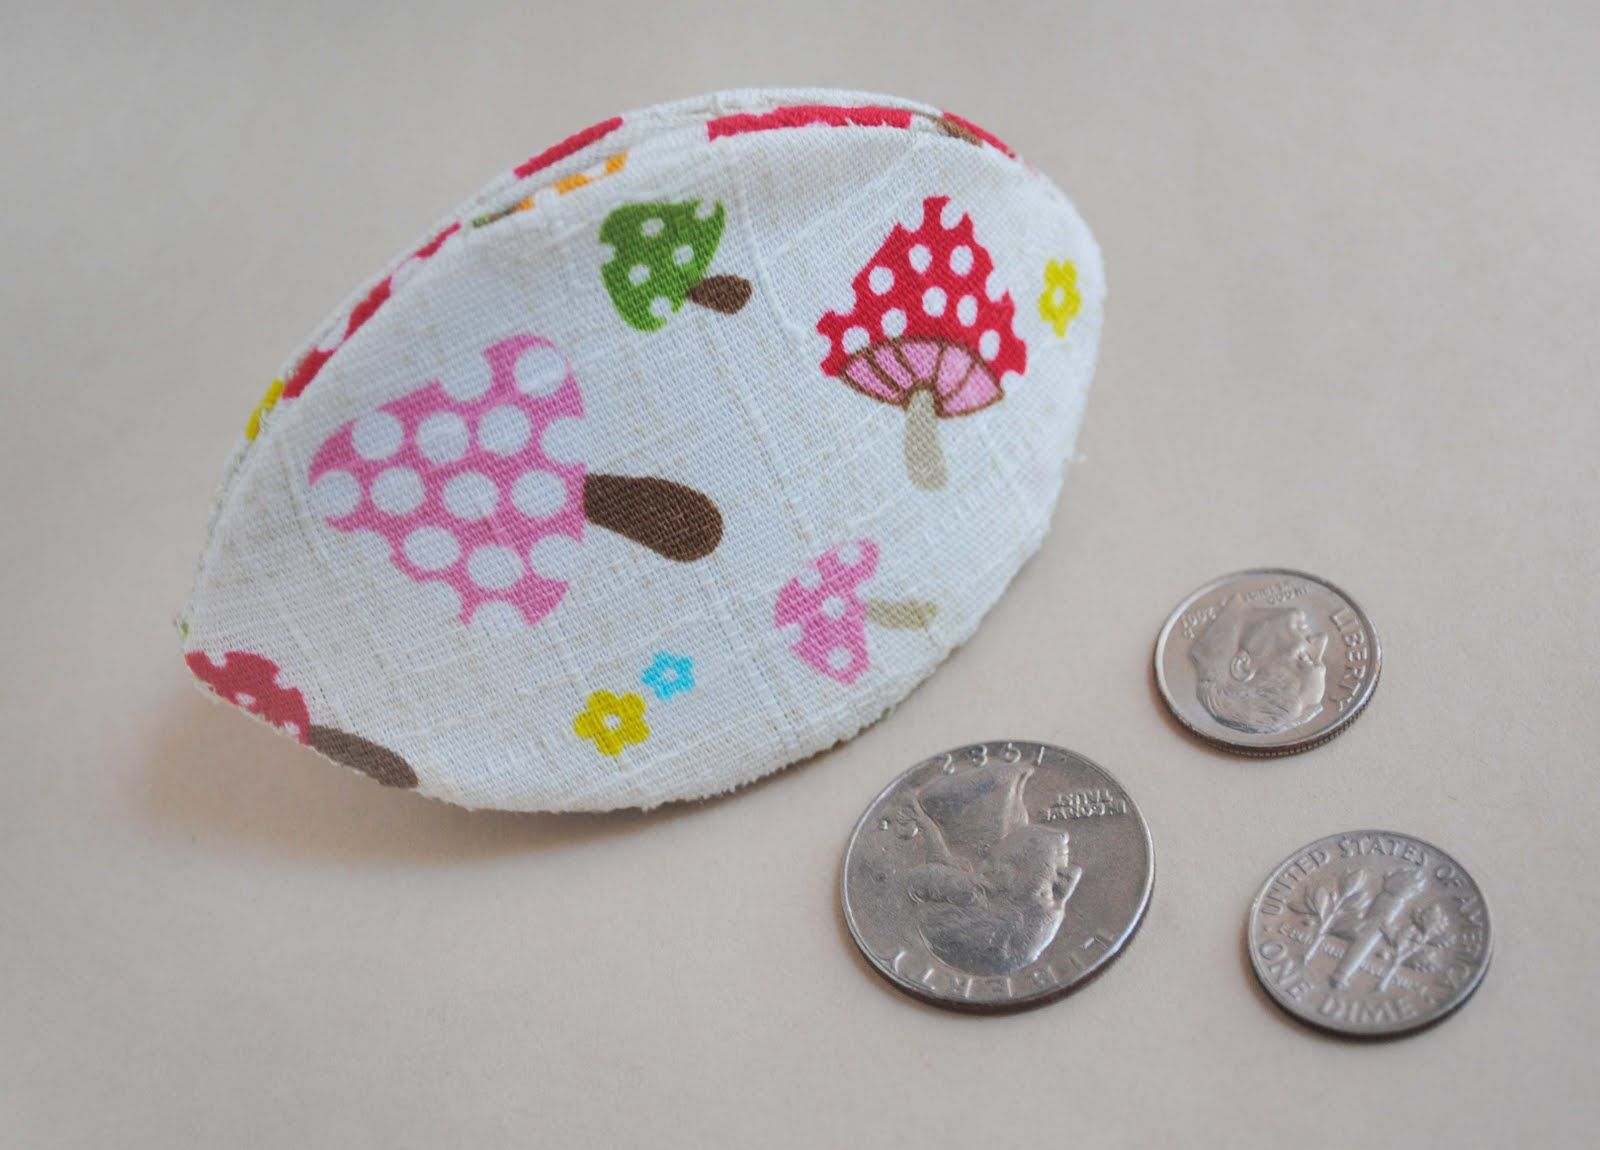 A while back I found a clever tutorial for making a coin purse out of yogurt lids.  I finally got a chance to try out the project and was pl...